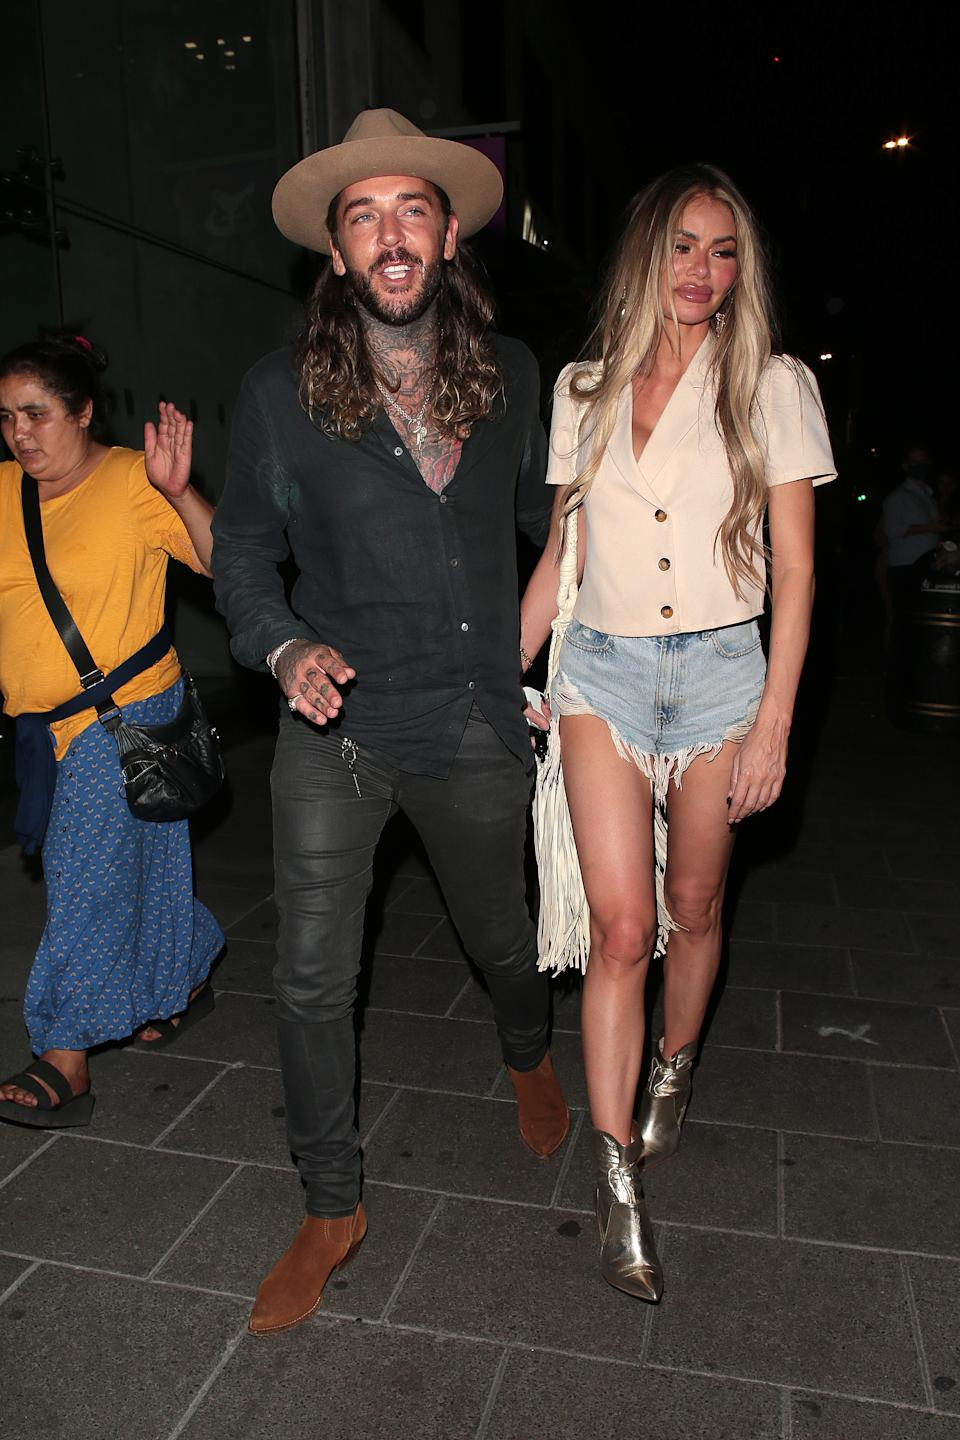 LONDON, ENGLAND - AUGUST 07:  Pete Wicks and Chloe Sims seen on a night out at Amazonico restaurant in Mayfair on August 07, 2020 in London, England. (Photo by Ricky Vigil/GC Images)